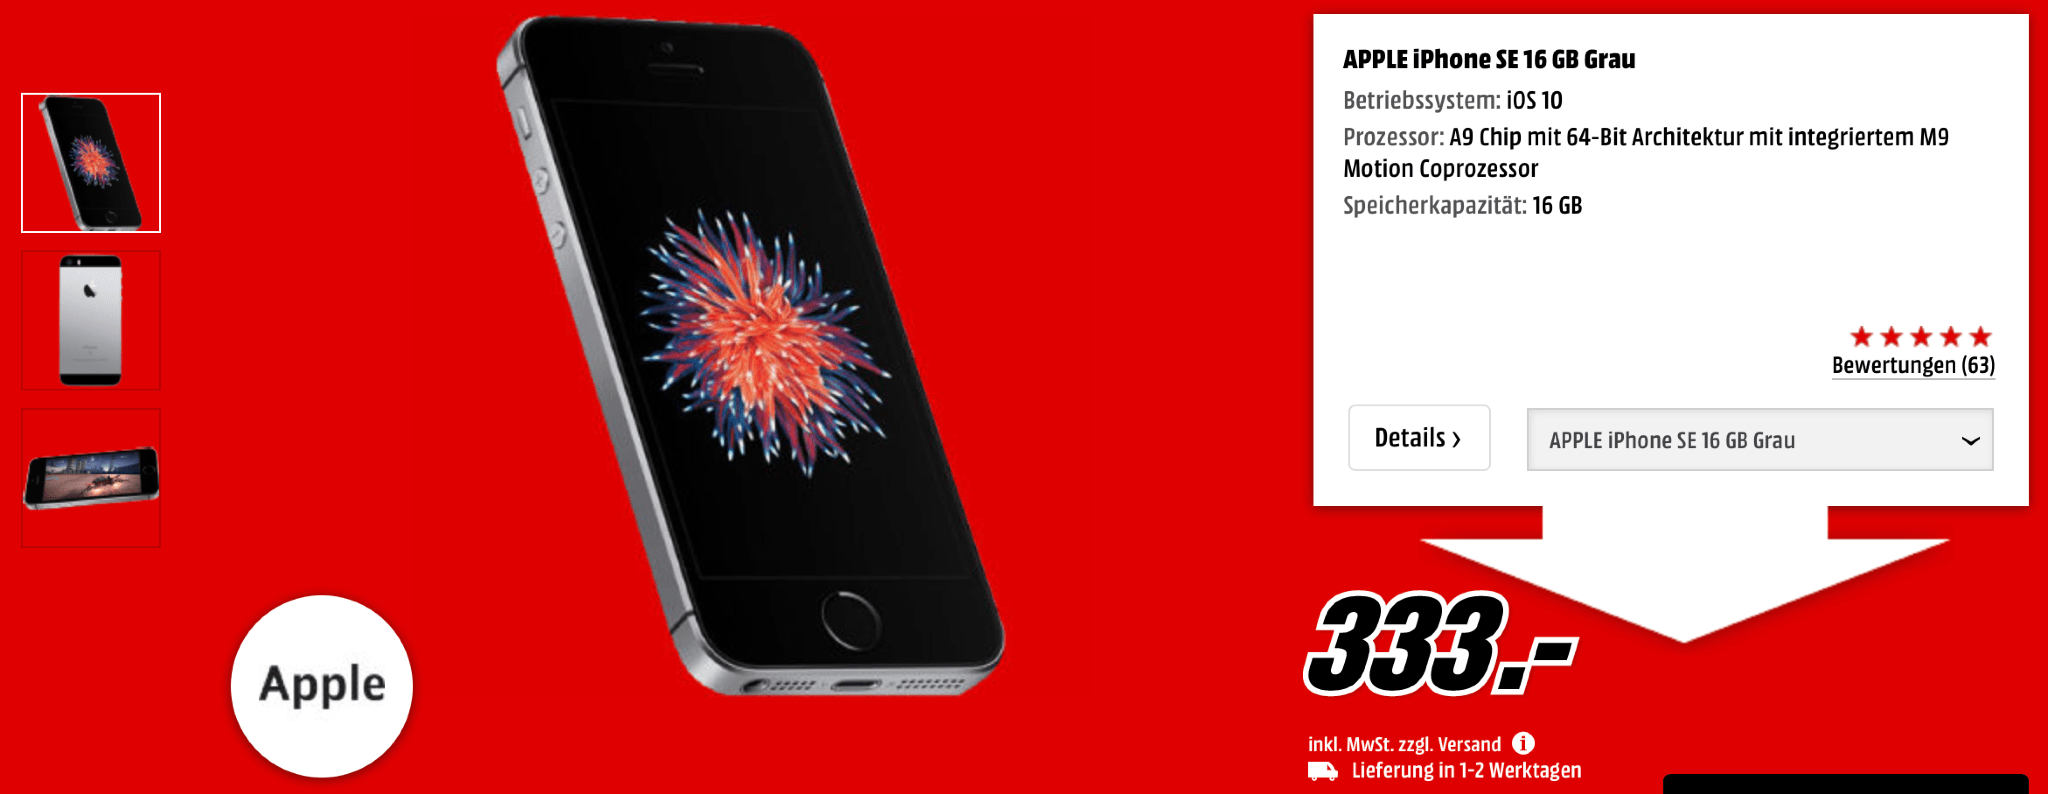 Media Markt Moviles Smartphone Libres Media Markt Iphone Se Nur 333 Euro 10 Prozent Rabatt